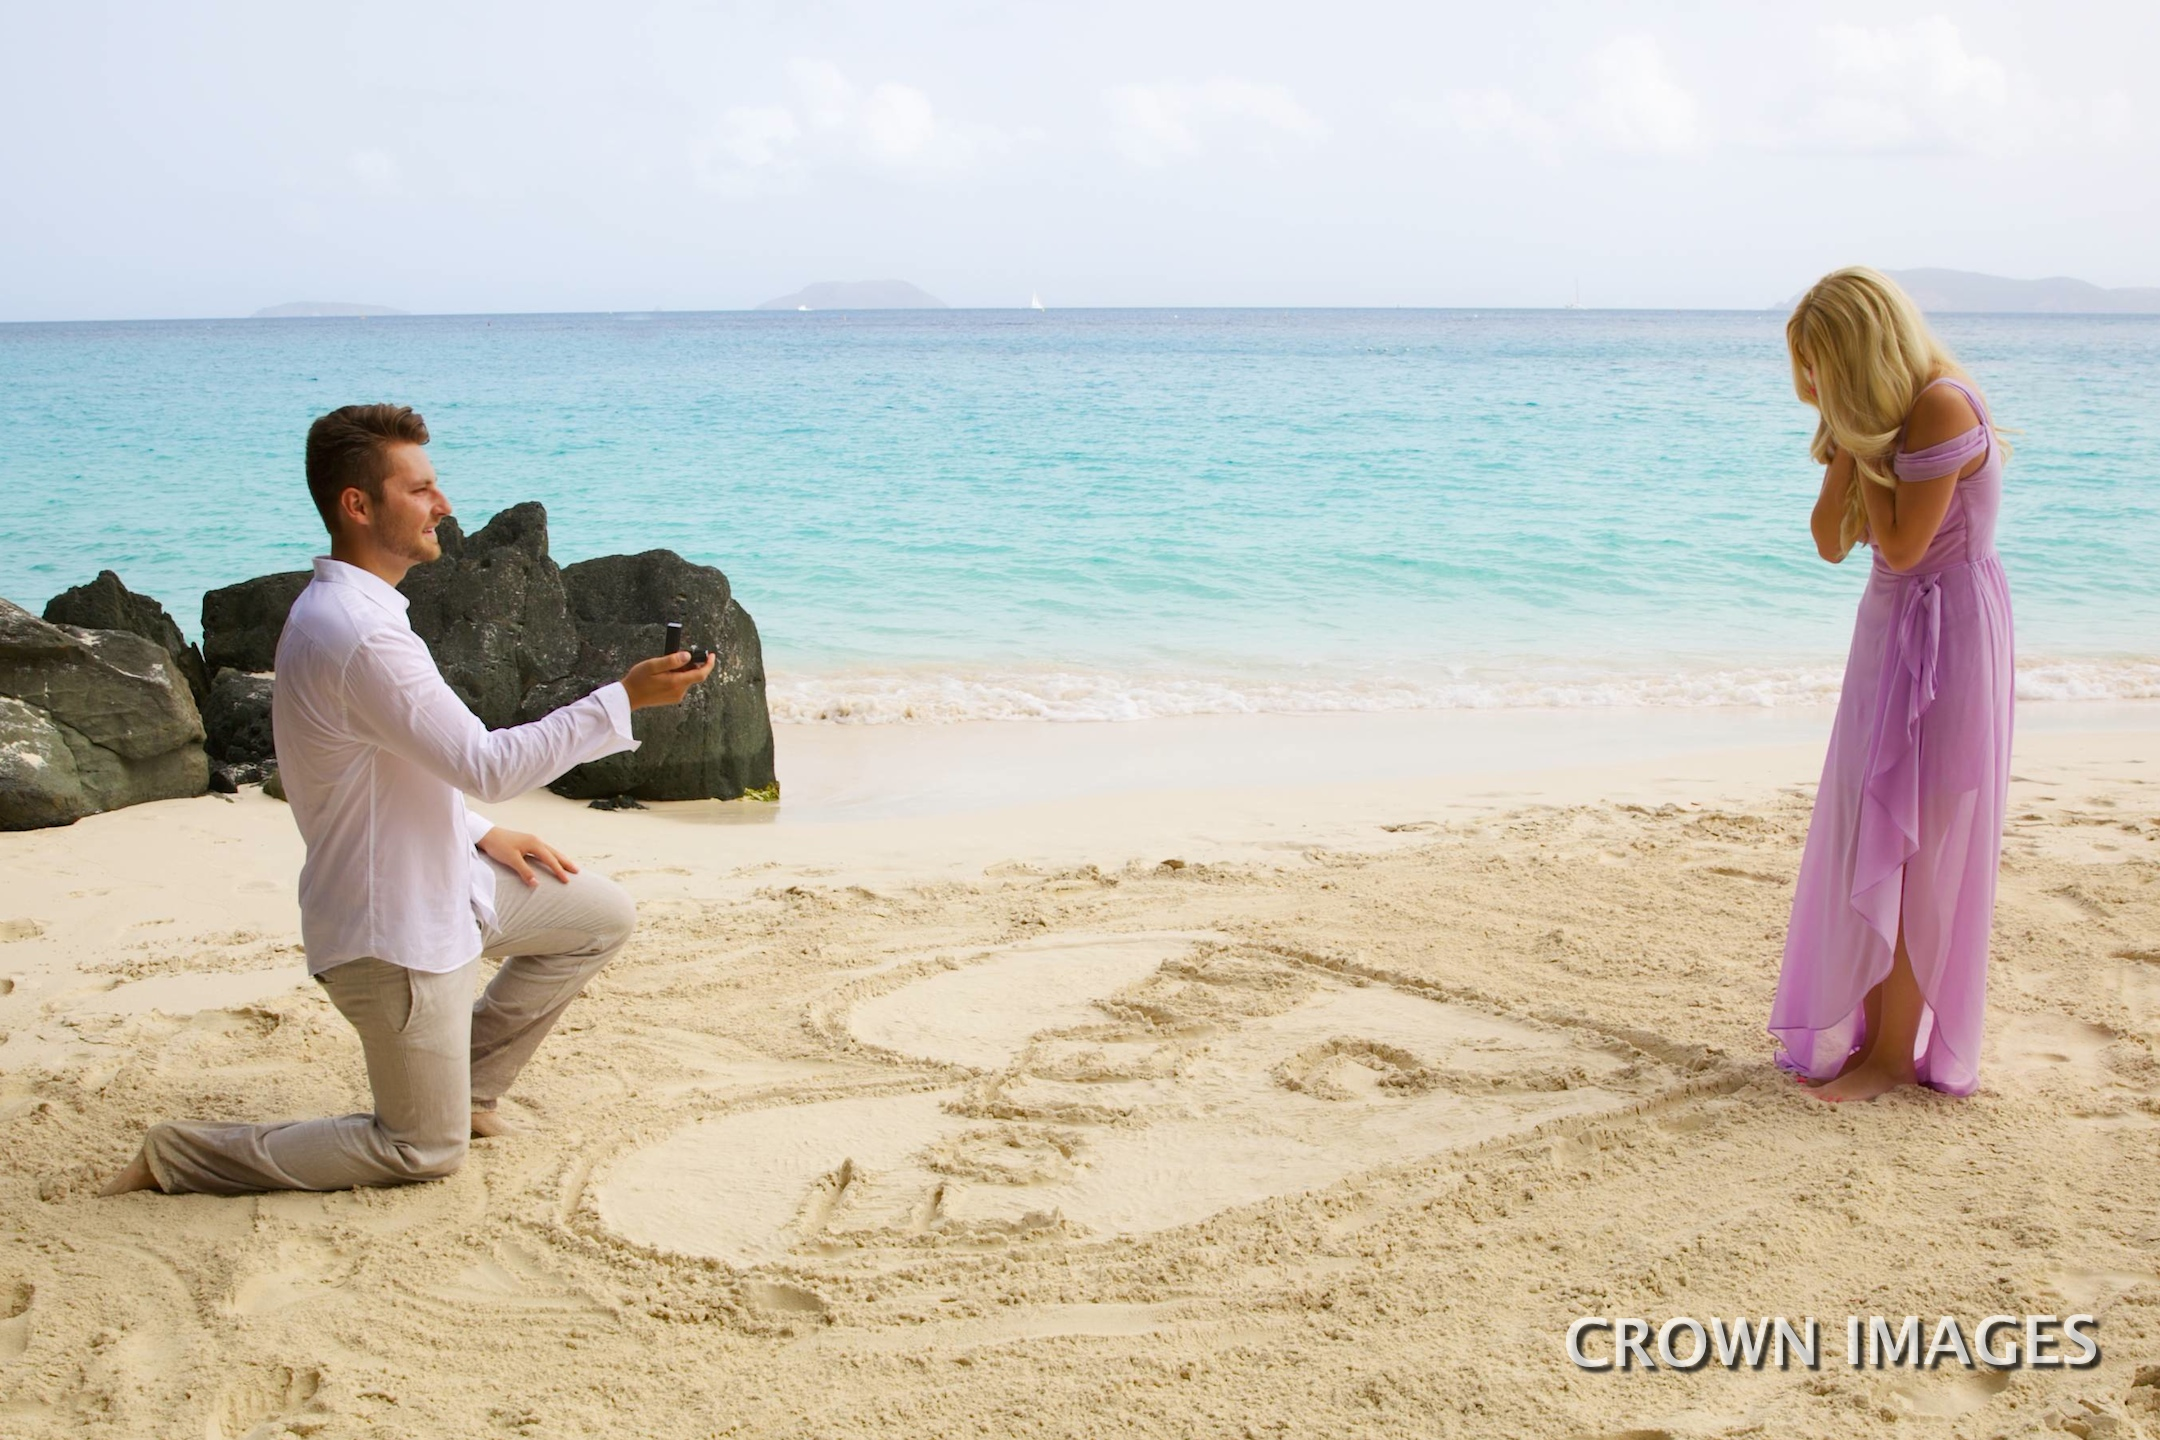 will you marry me virgin islands